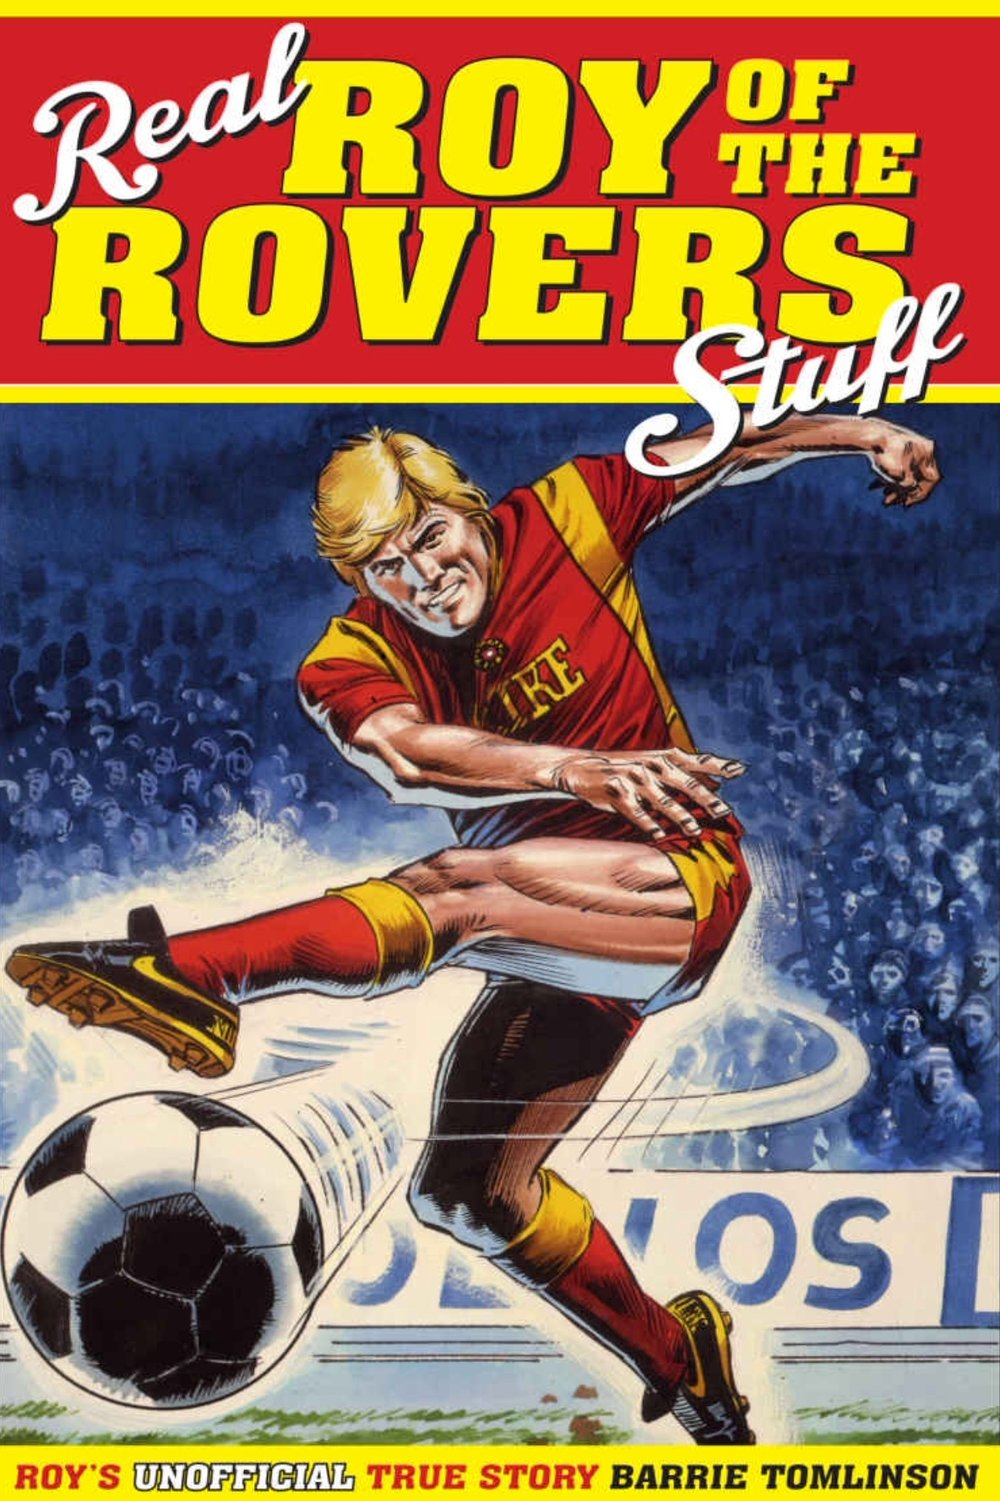 Real Roy of the Rovers Stuff by Barrie Tomlinson (Pitch Publishing), cover artwork by Mike White